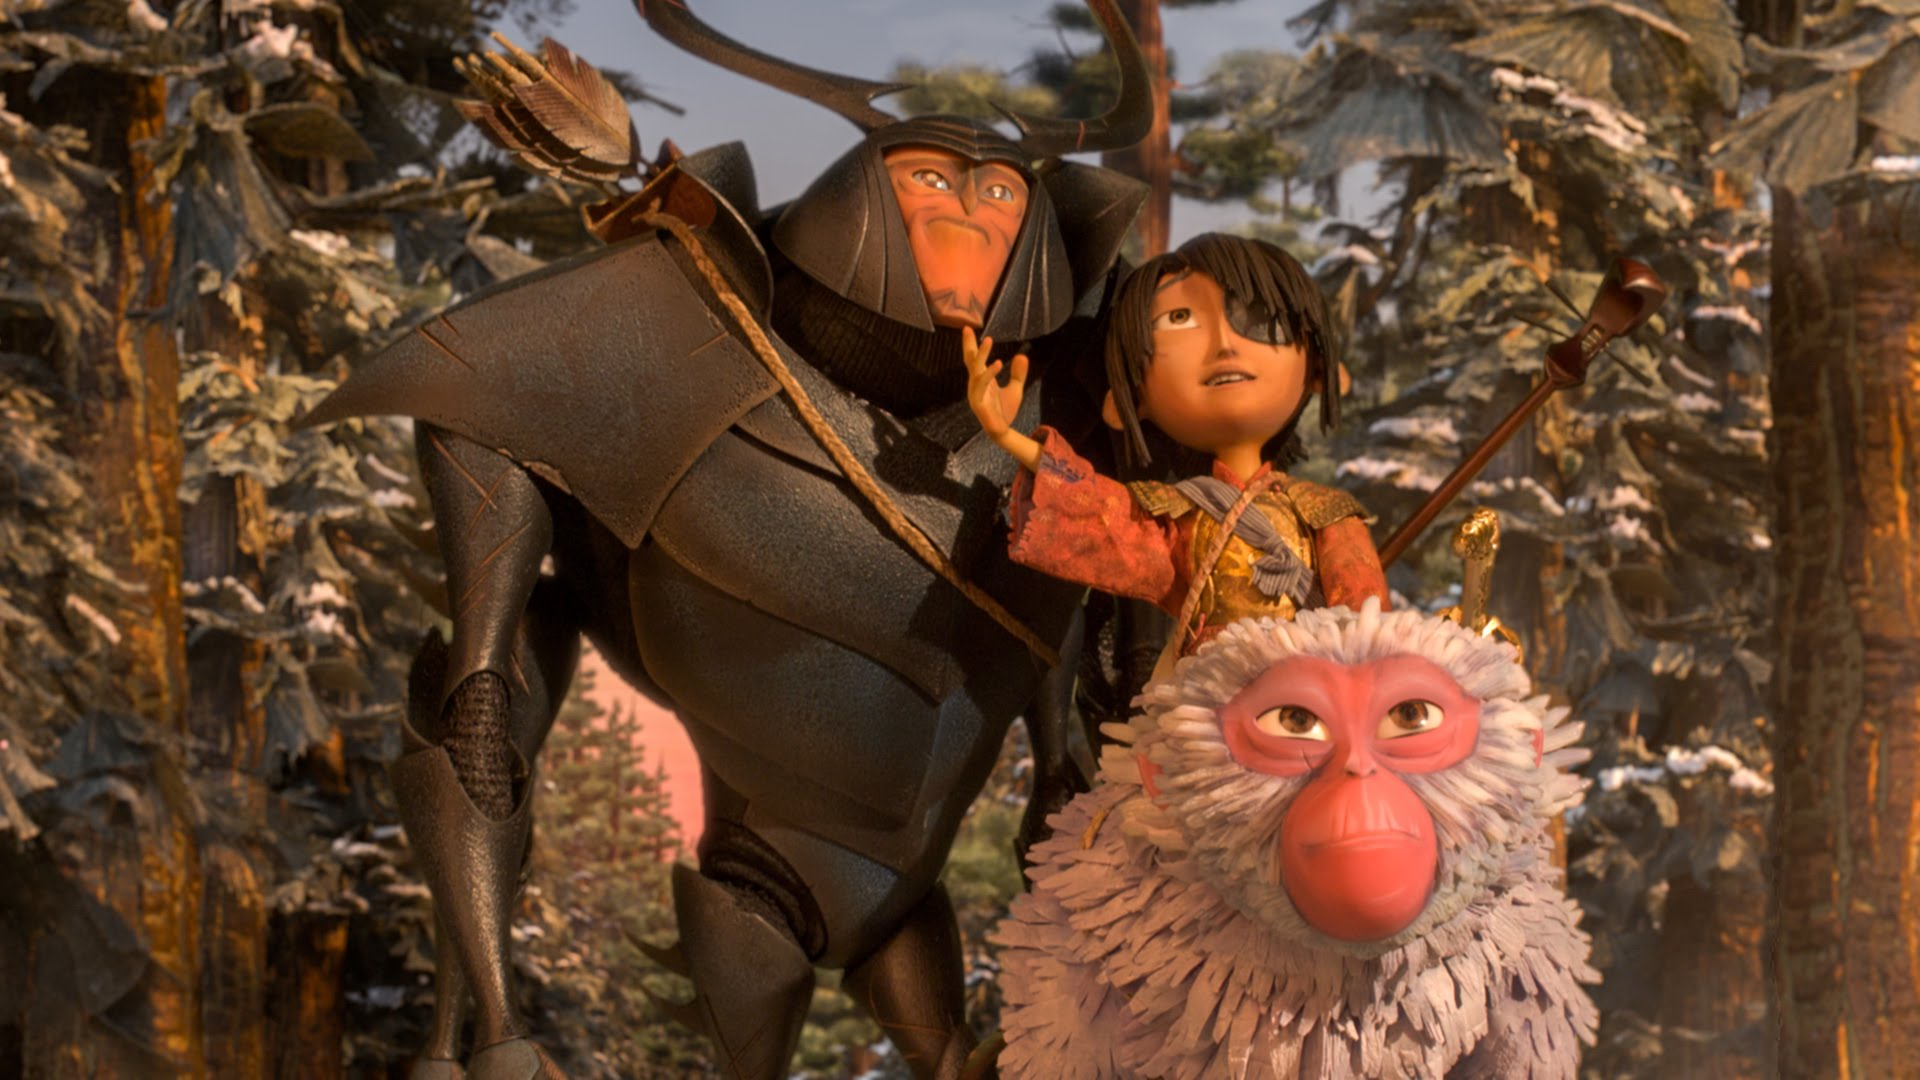 Laika's 'Kubo and the Two Strings' has a soft opening